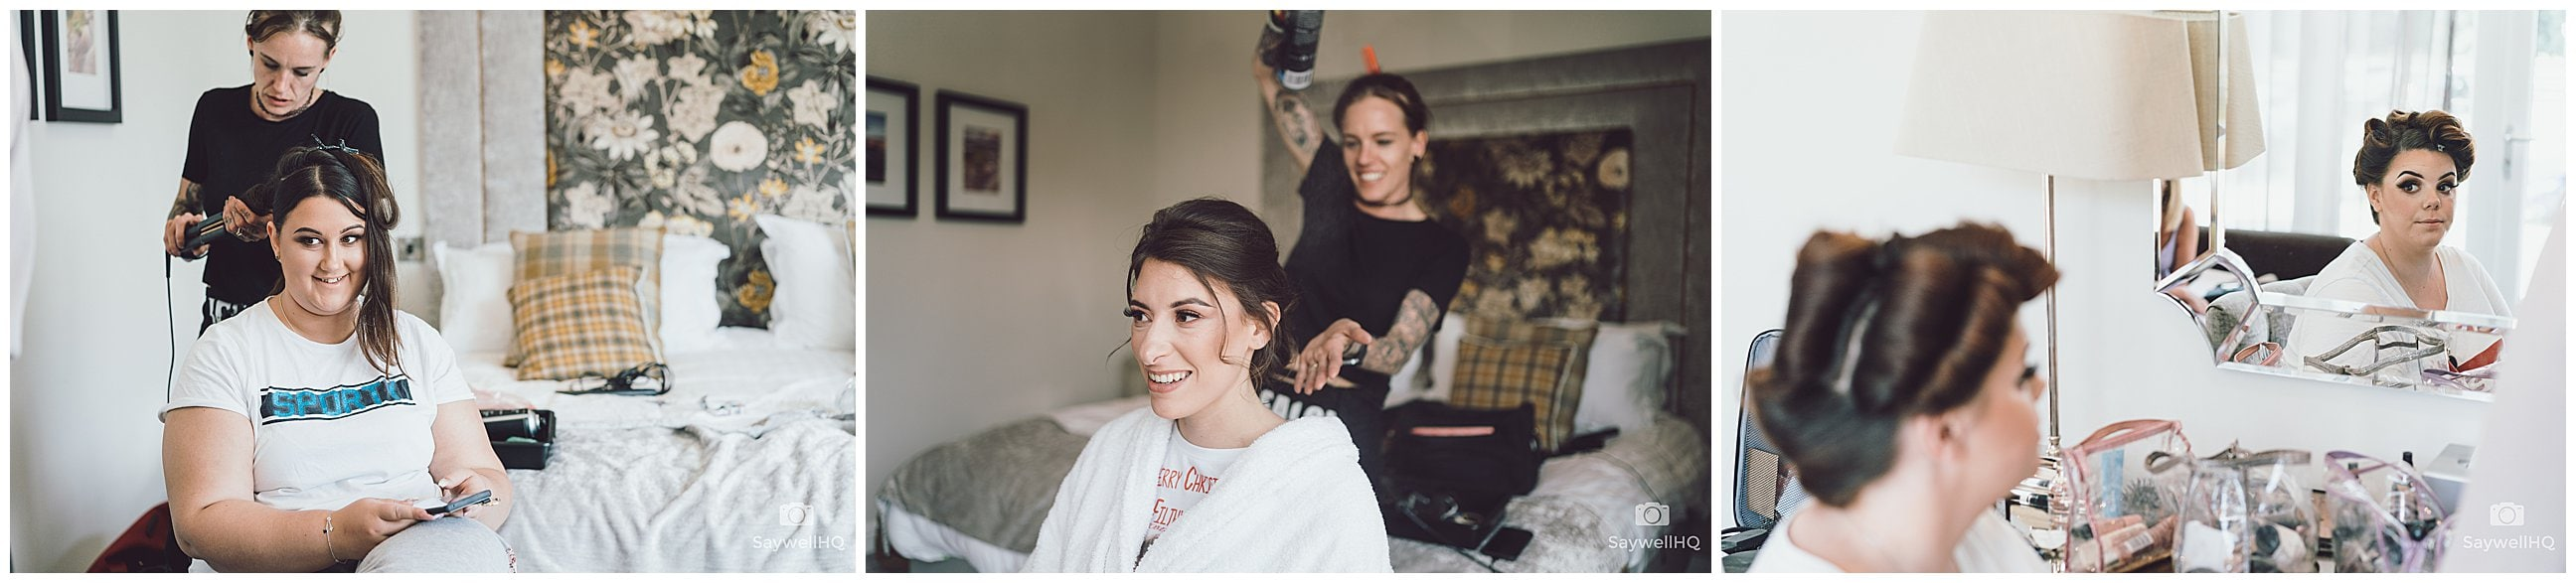 Derby Wedding Photographer - Peak Edge Hotel - bride and bridesmaids getting ready on the morning of a wedding